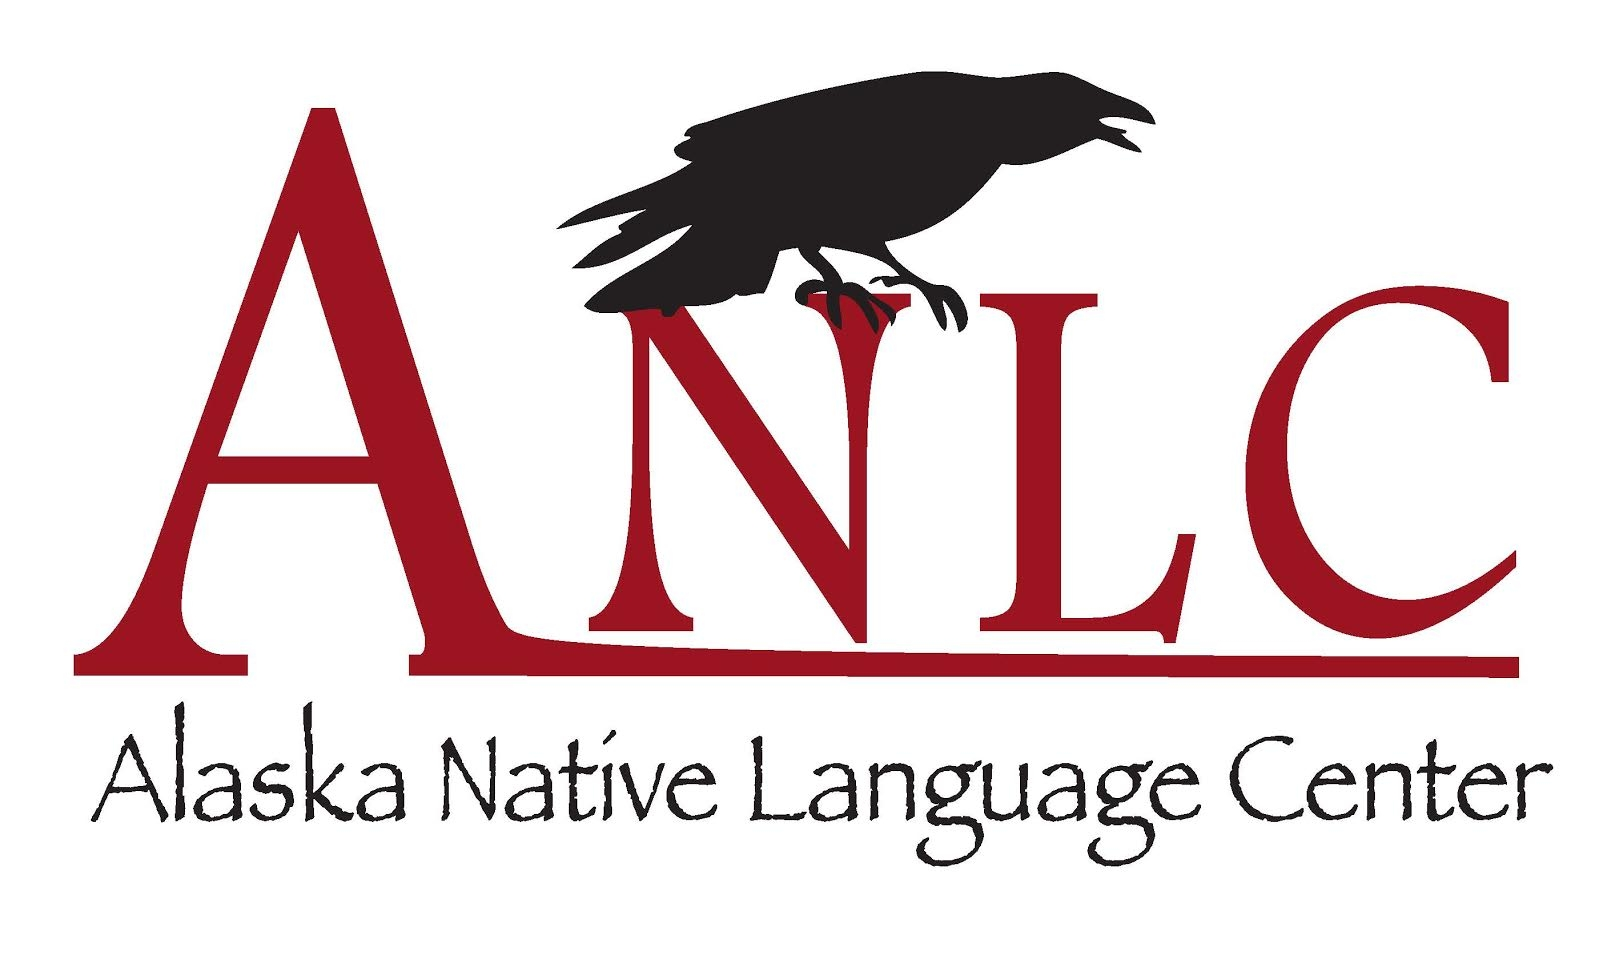 The Alaska Native Language Center was established by state legislation  in 1972 as a center for research and documentation of the twenty Native  languages of Alaska. ANLC publishes its research in story collections, dictionaries, grammars, and research papers.